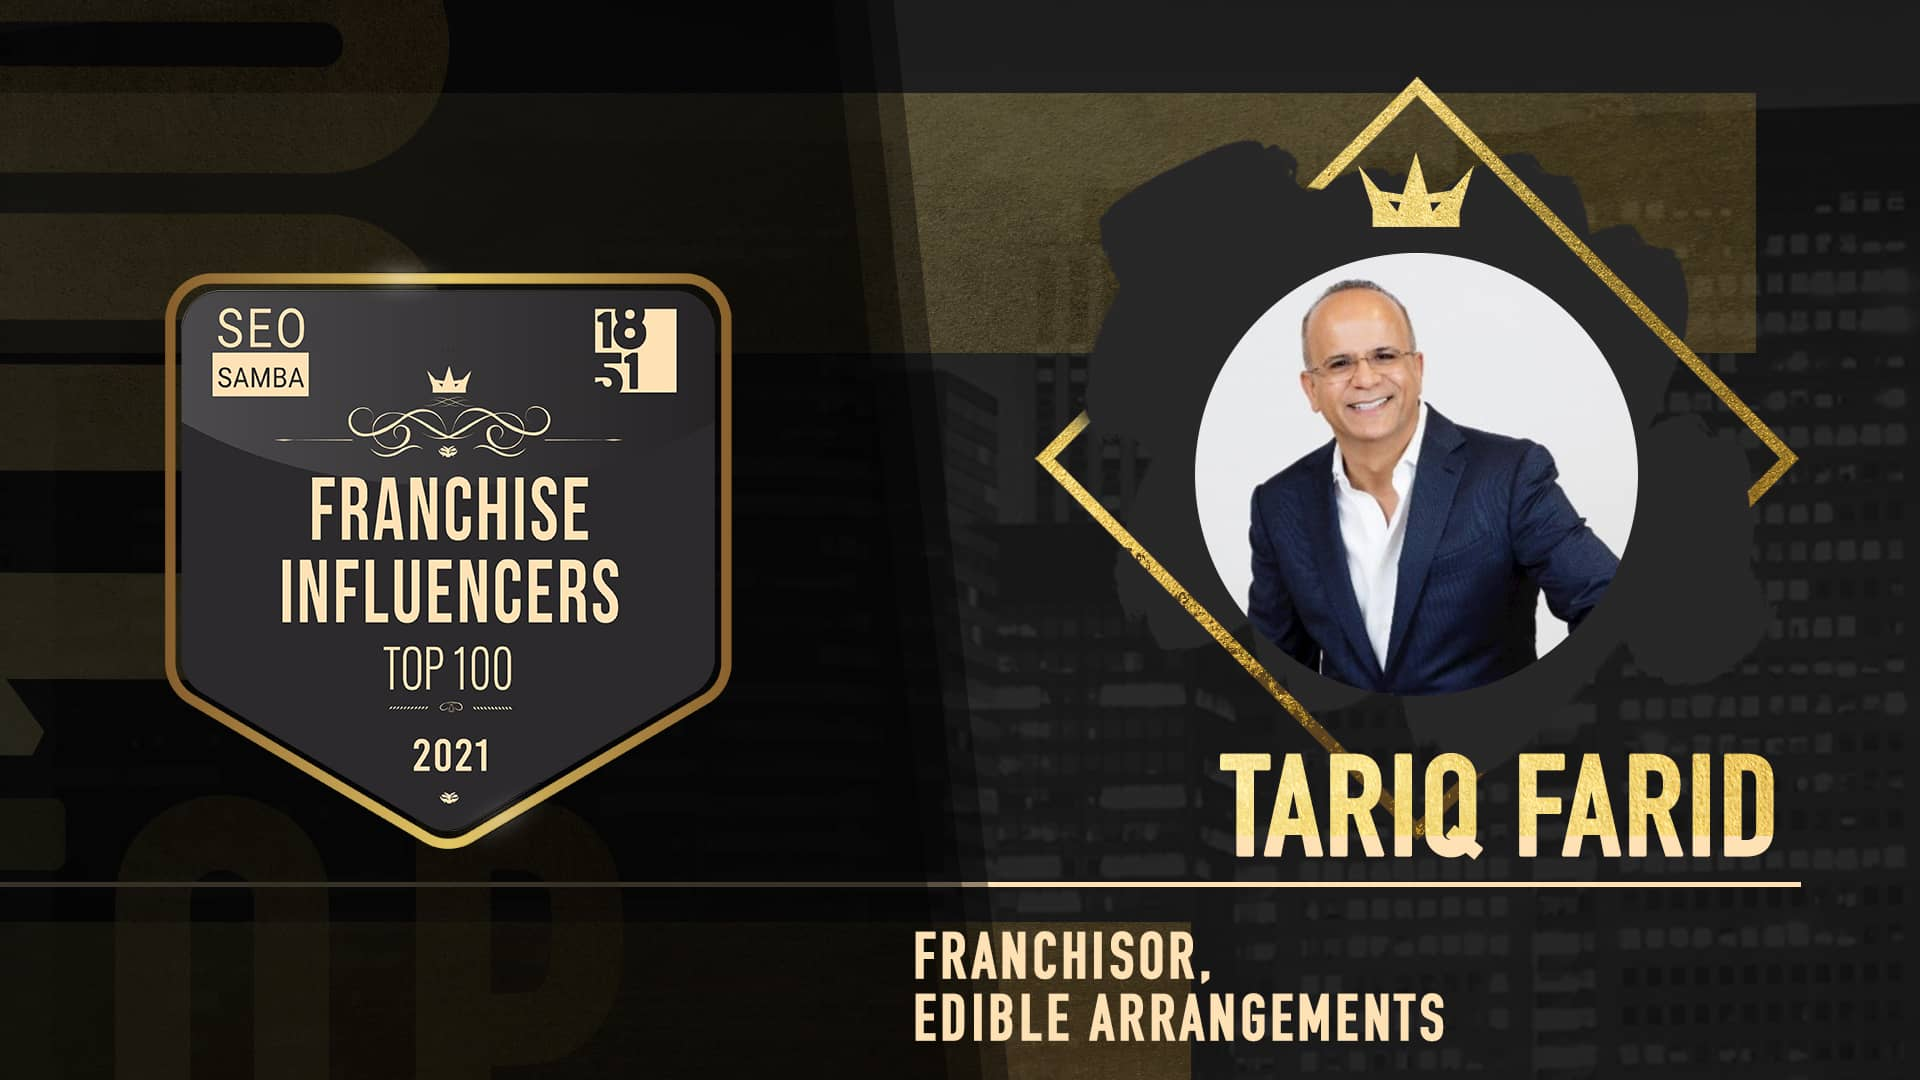 tariq-farid-edible-arrangements